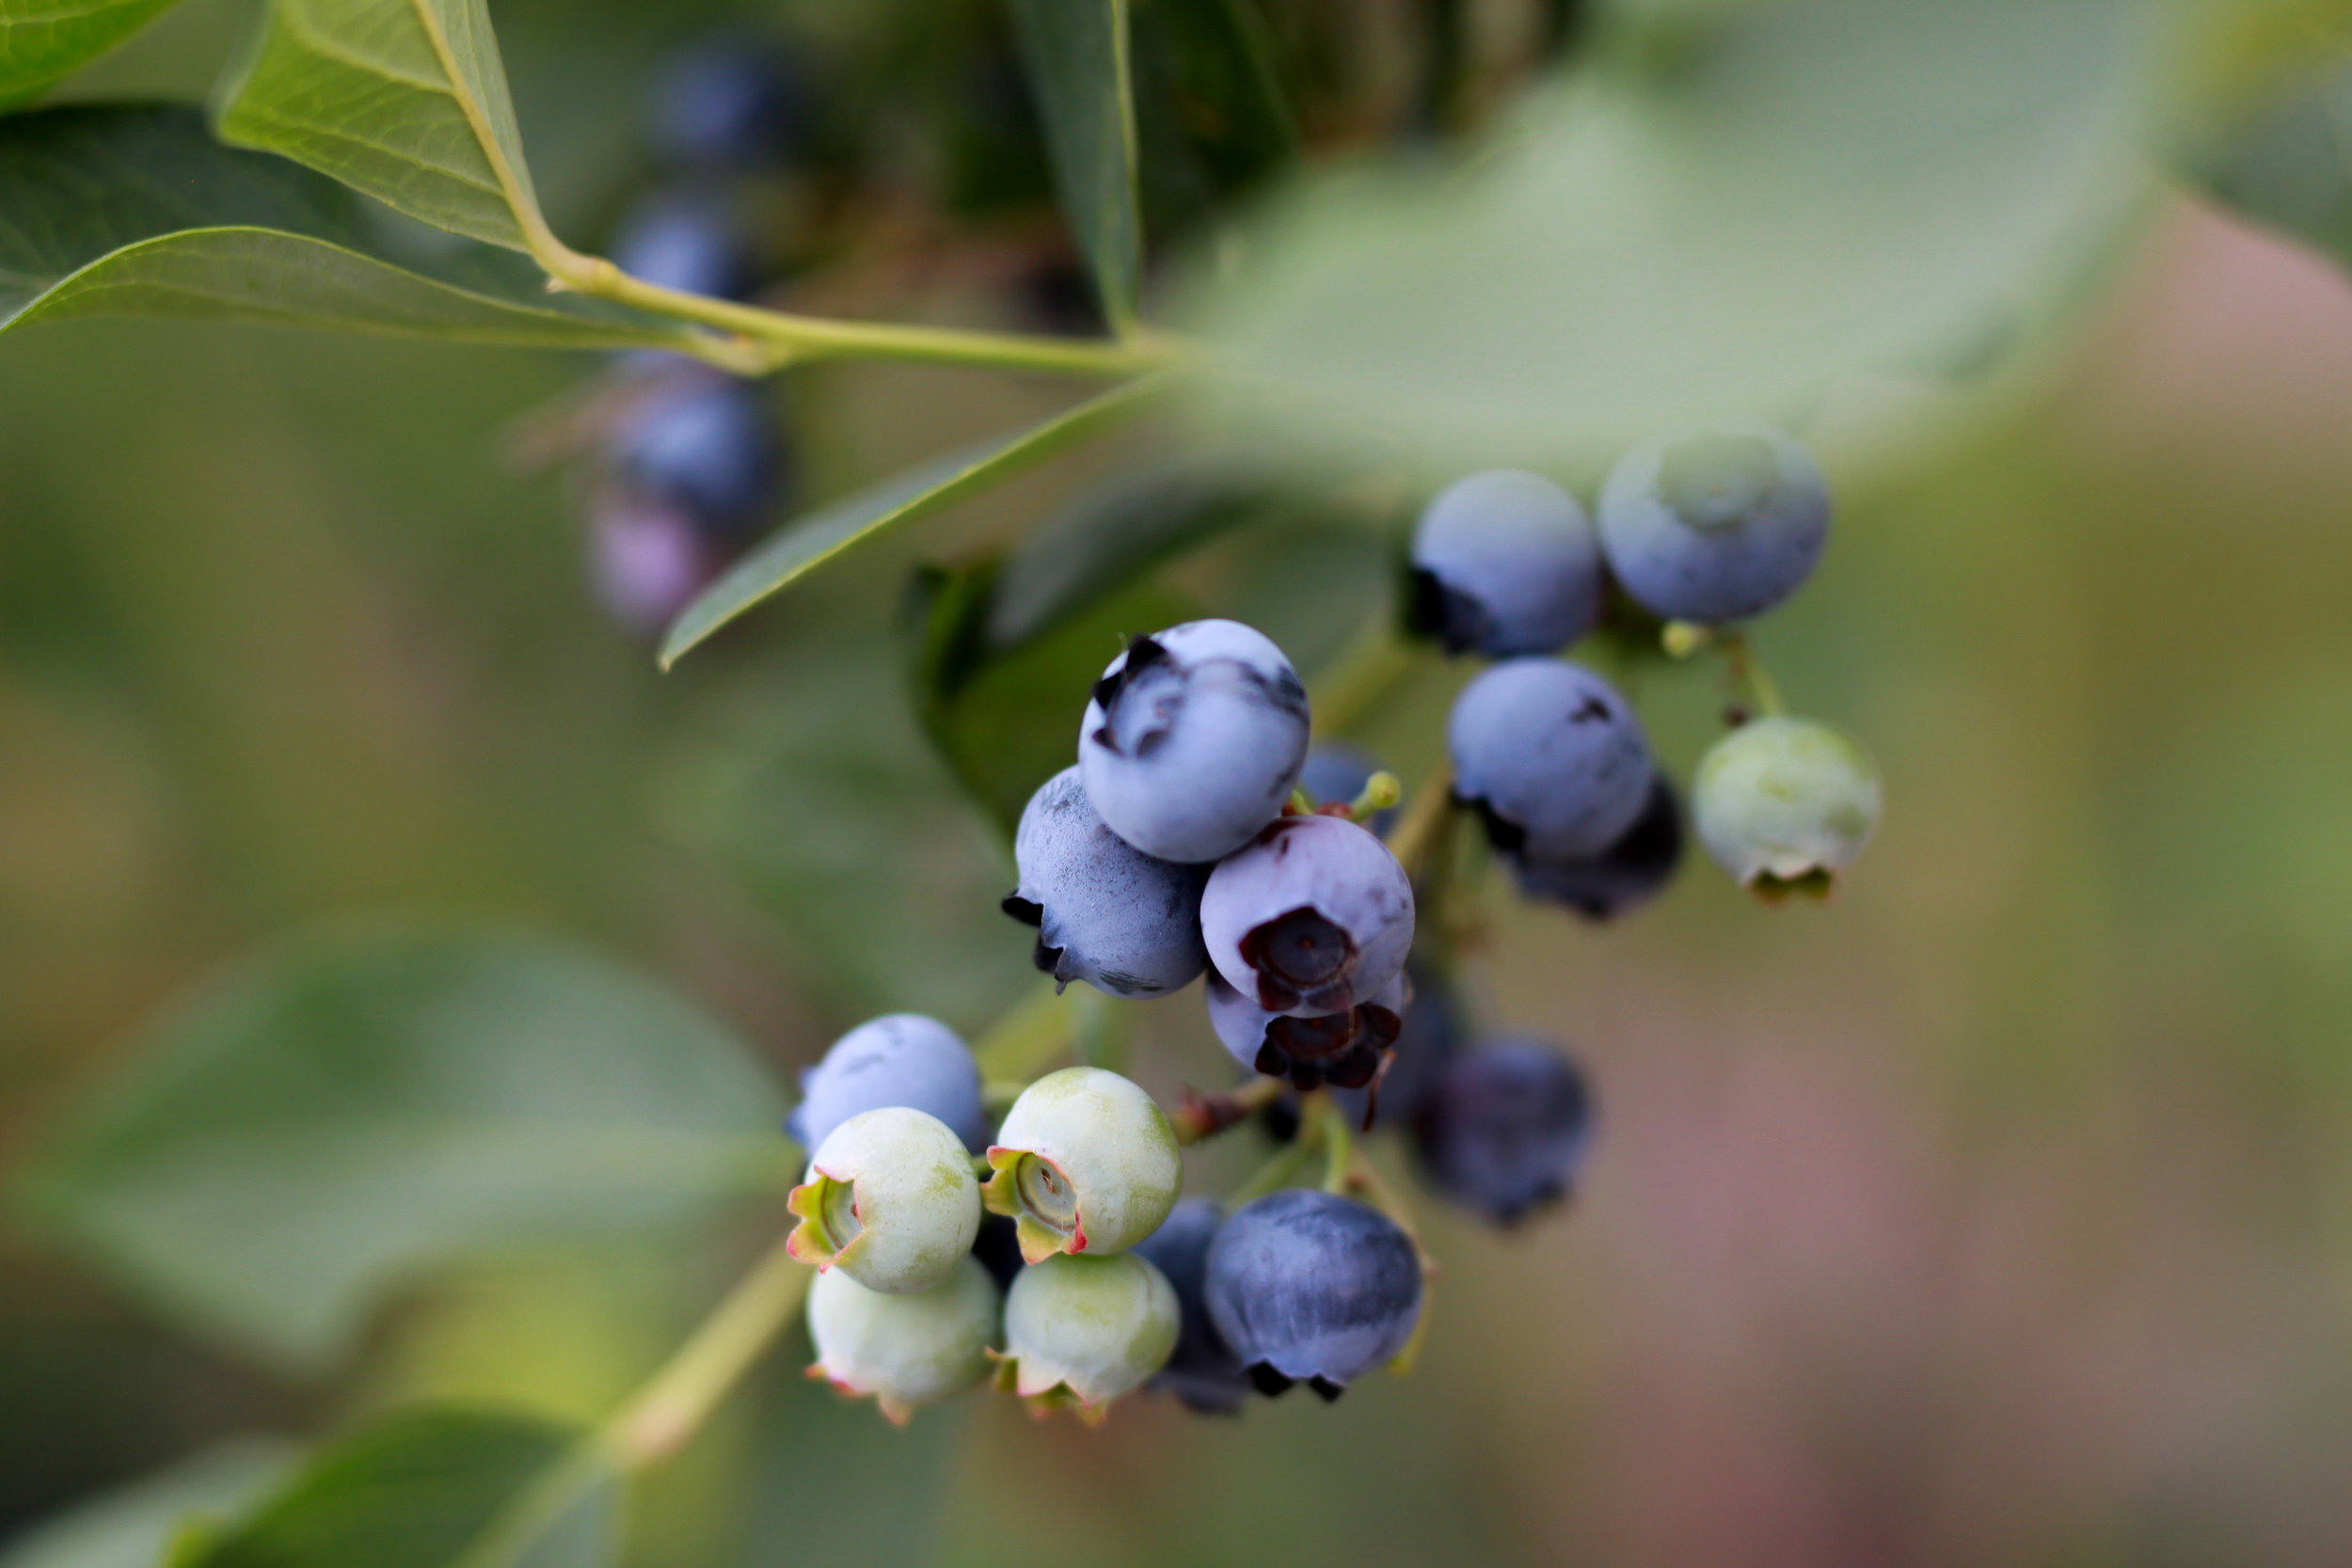 SequelPhotography-Blueberry(6of7).jpg